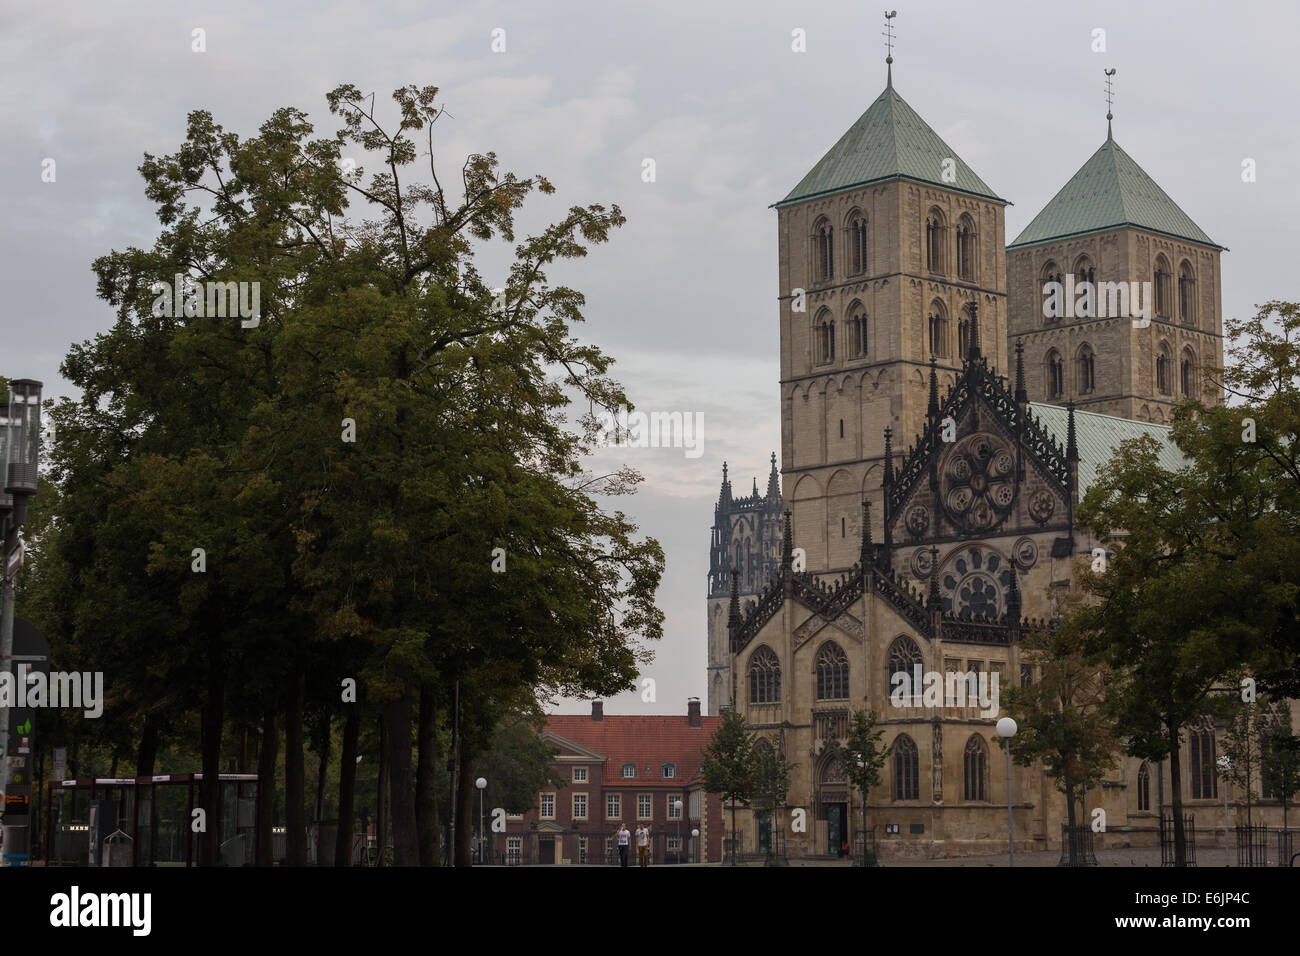 The Dom (cathedral) in Münster in NRW, Germany - Stock Image